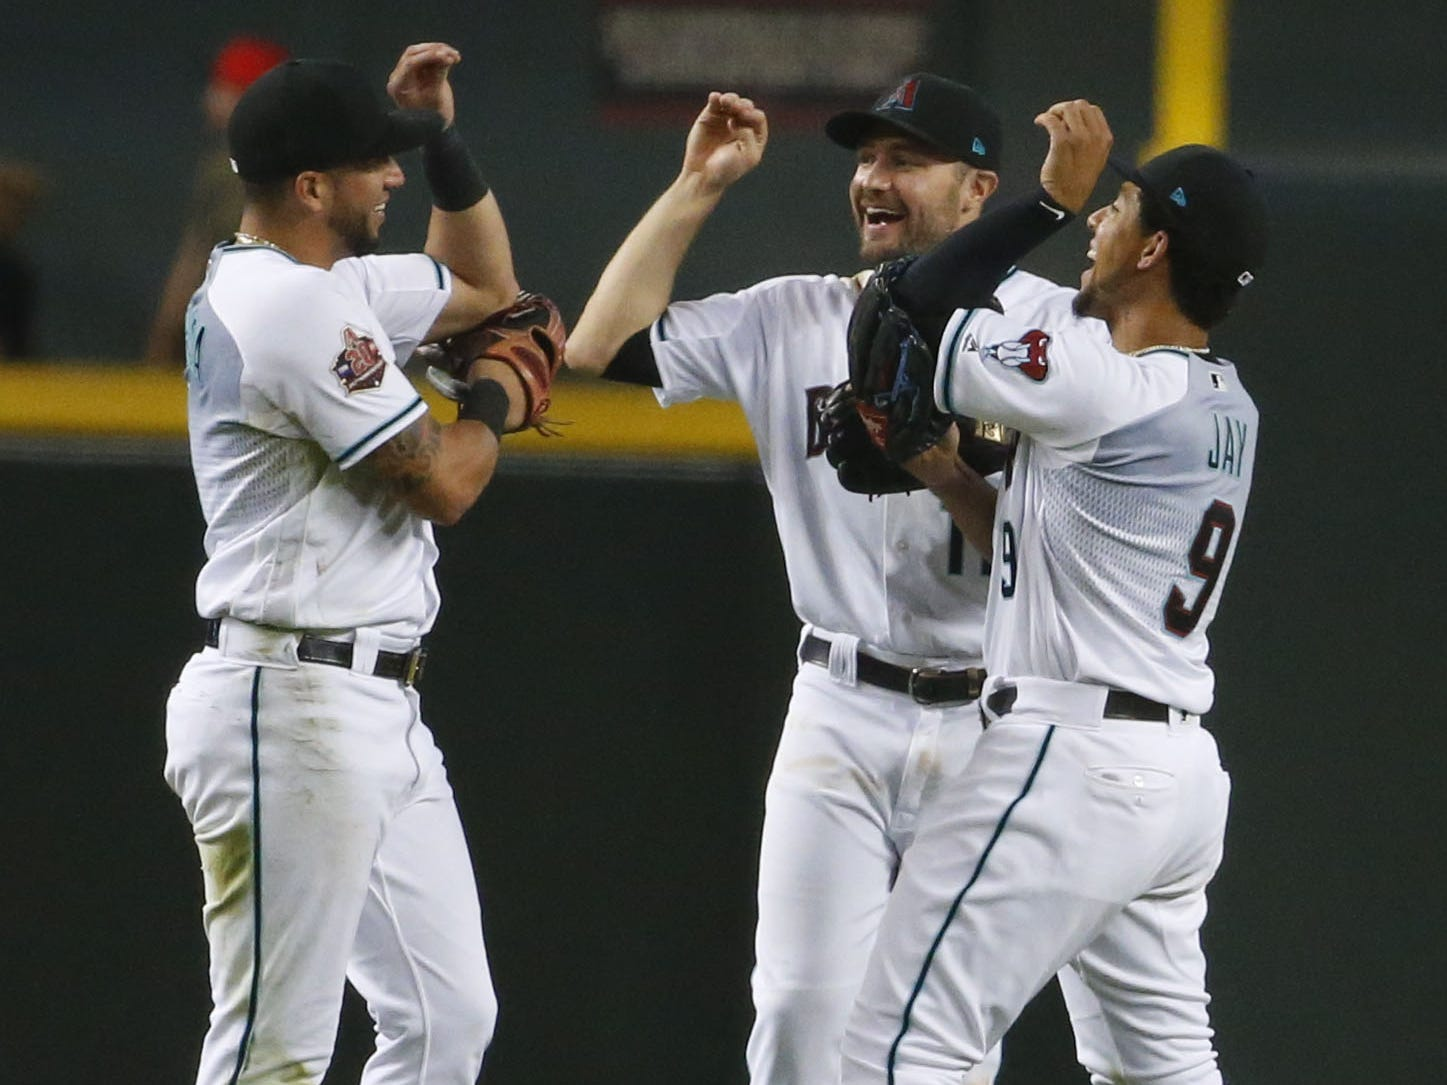 Arizona Diamondbacks outfielders celebrate a win during a MLB game against Atlanta Braves at Chase Field in Phoenix on September 7, 2018.